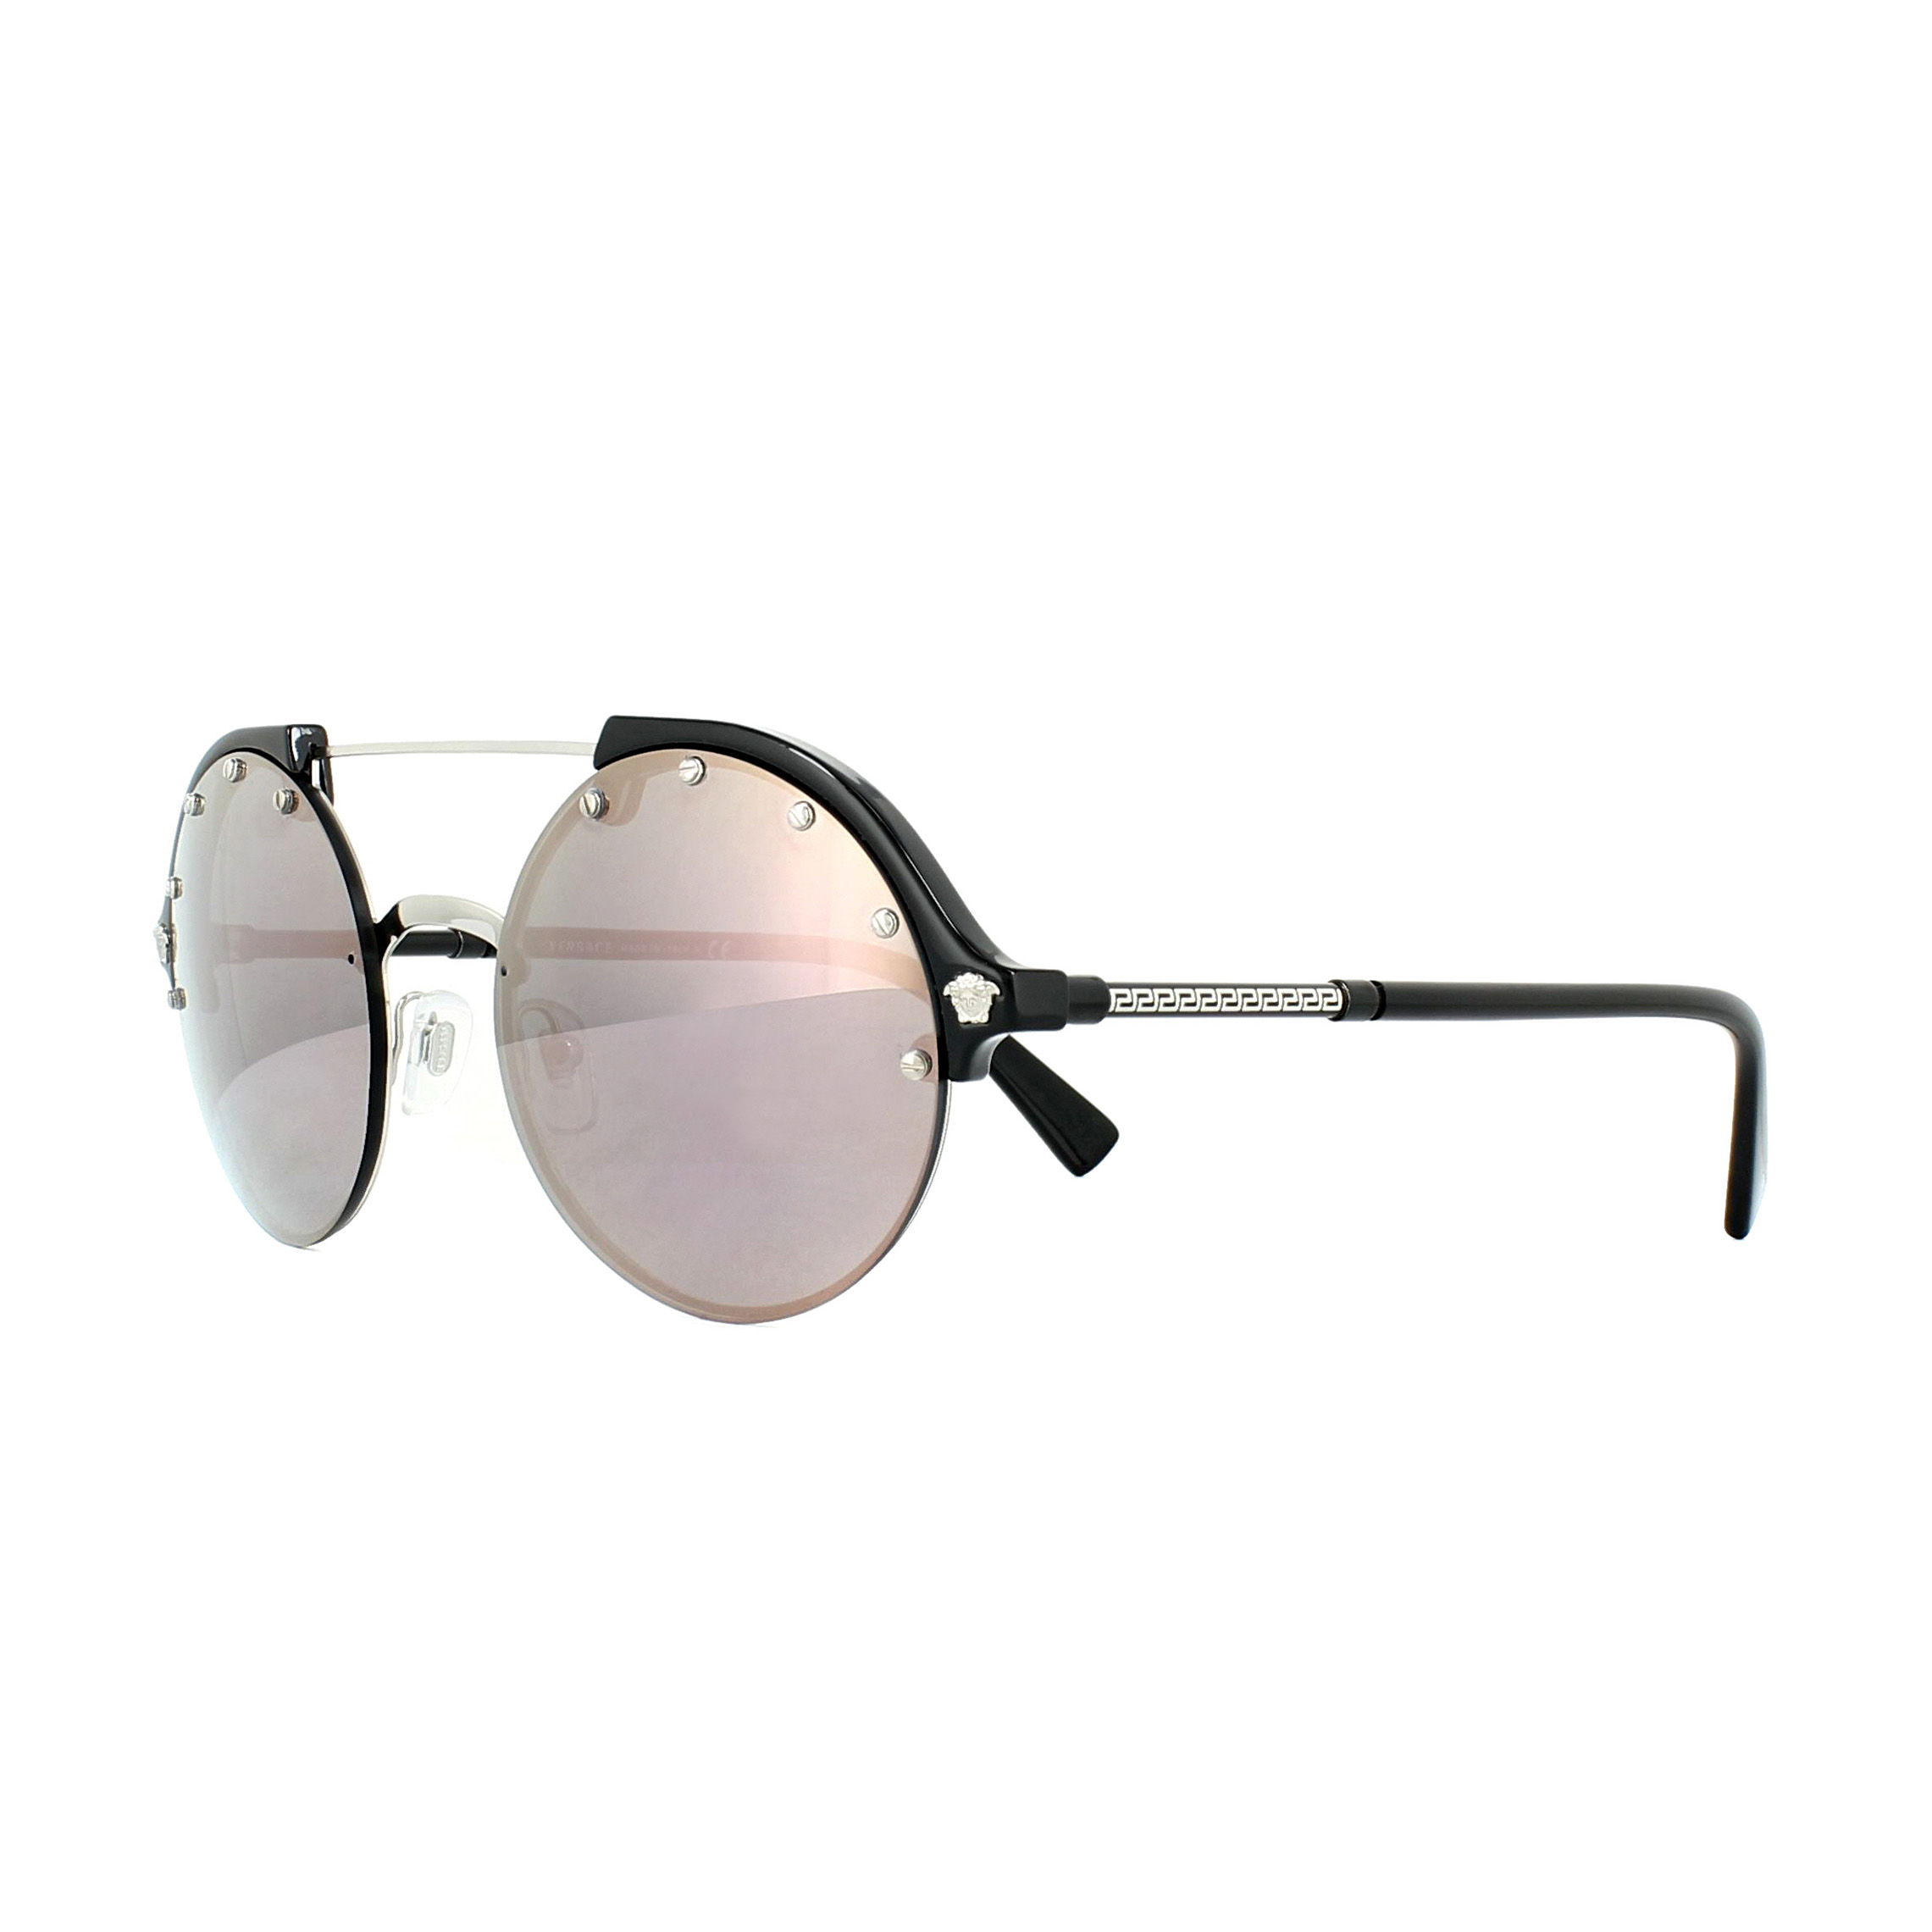 0636653f1a930 Sentinel Versace Sunglasses 4337 GB1 5R Silver and Black Dark Grey Pink  Mirror